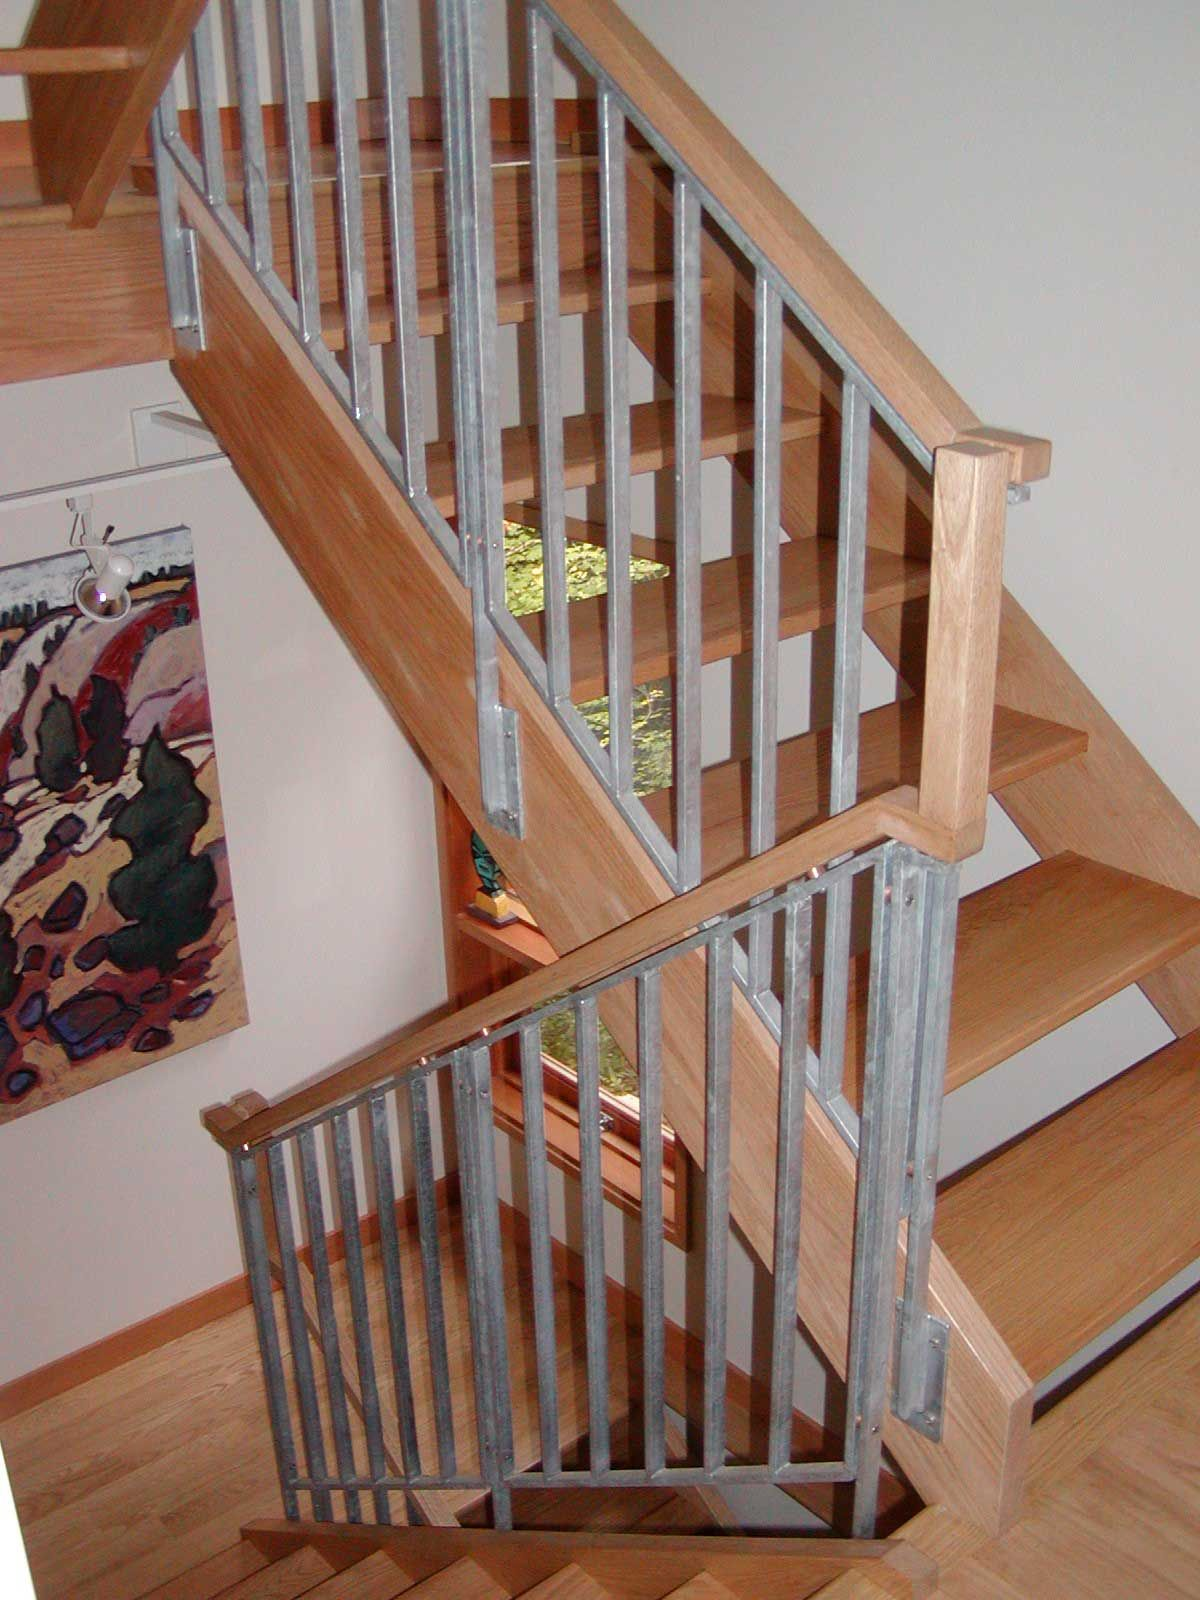 Stairs Wood Railing Stair And Standard Quality Staircases Years Related Have Your Railings Rail Description From Lab9design